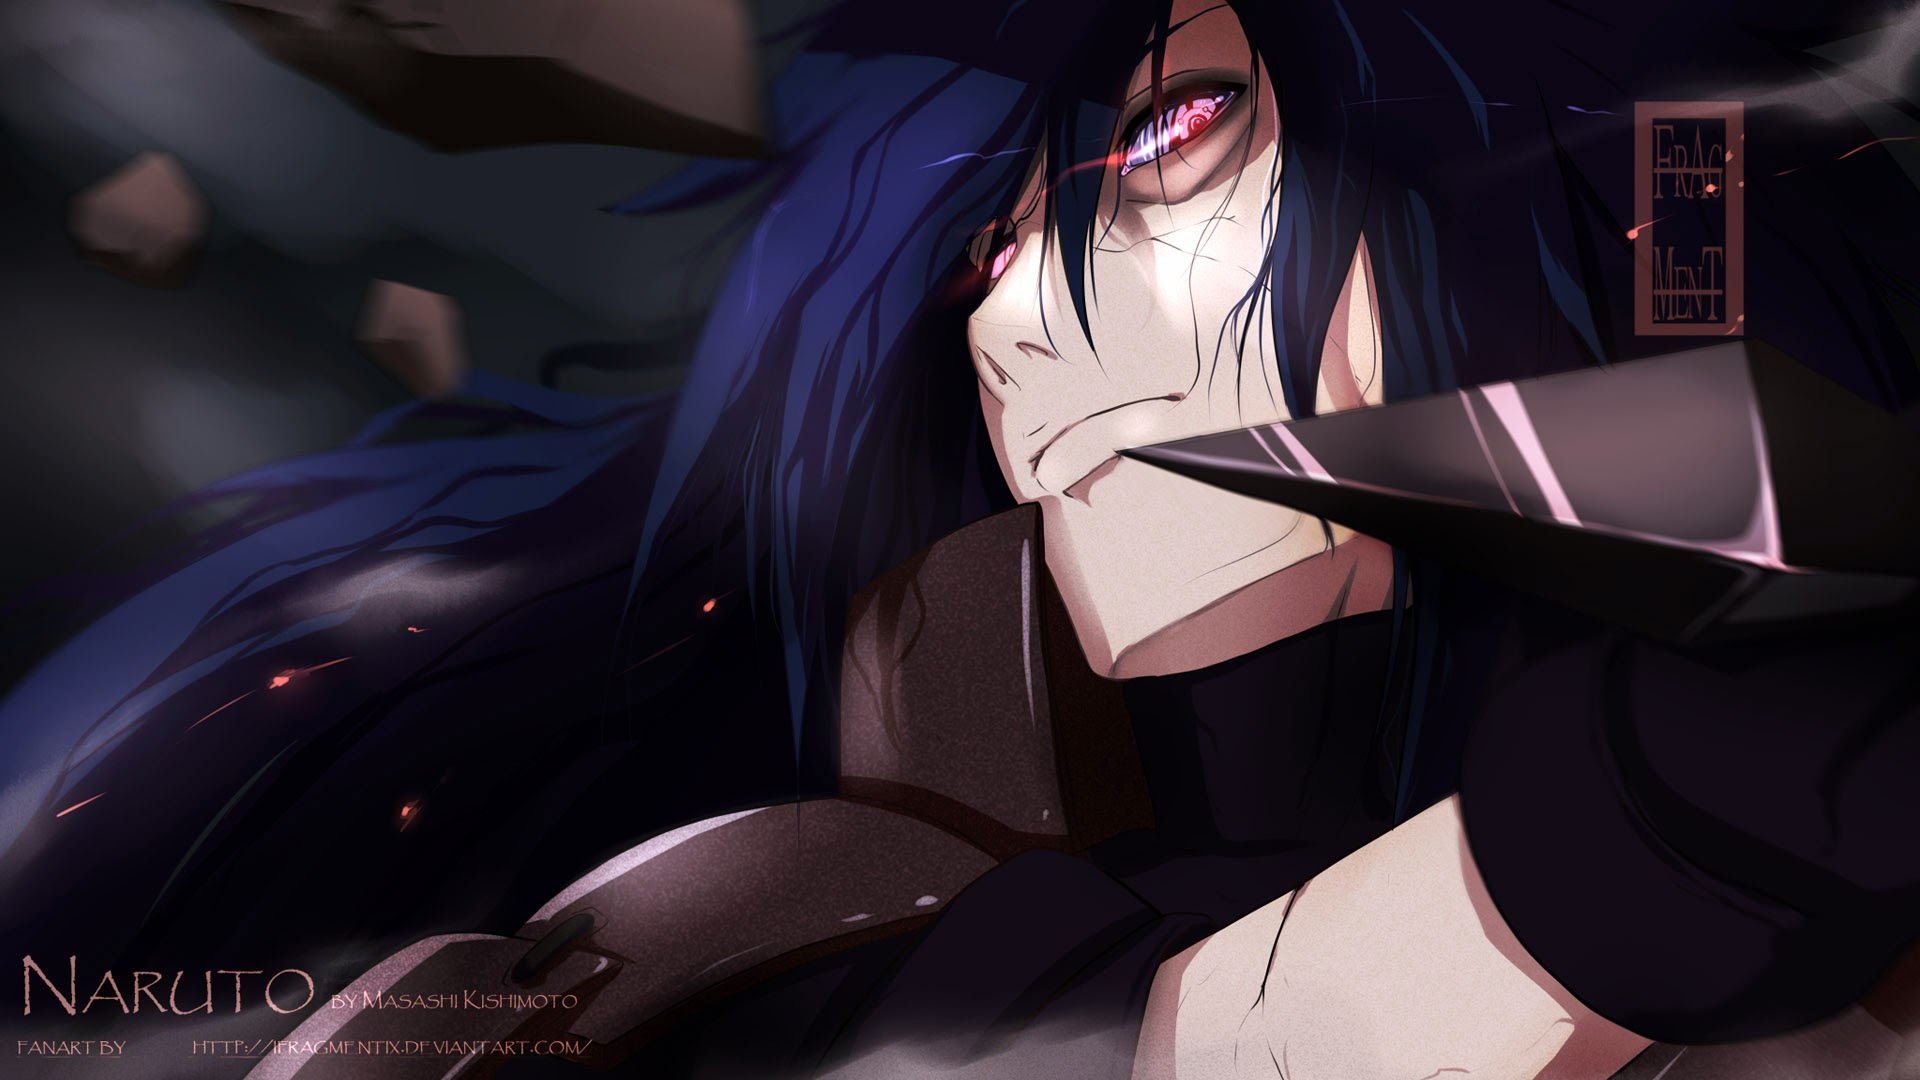 uchiha madara mangekyou sharingan eyes anime hd wallpaper deviant art 1920x1080